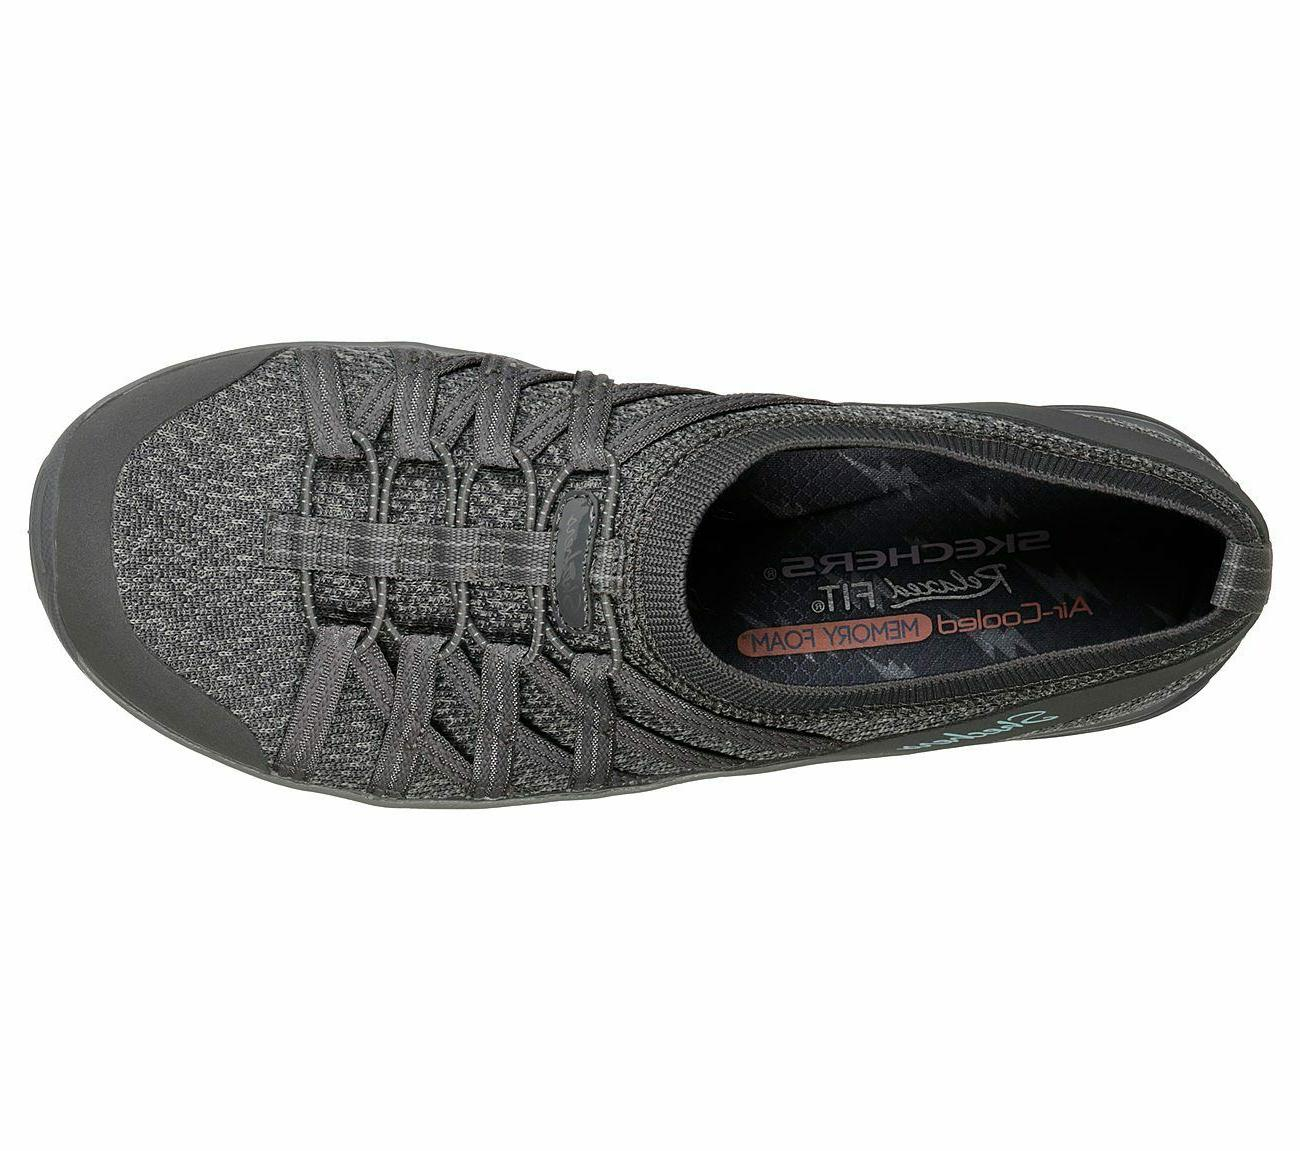 Skechers shoes Memory Foam Comfort Sporty Walk